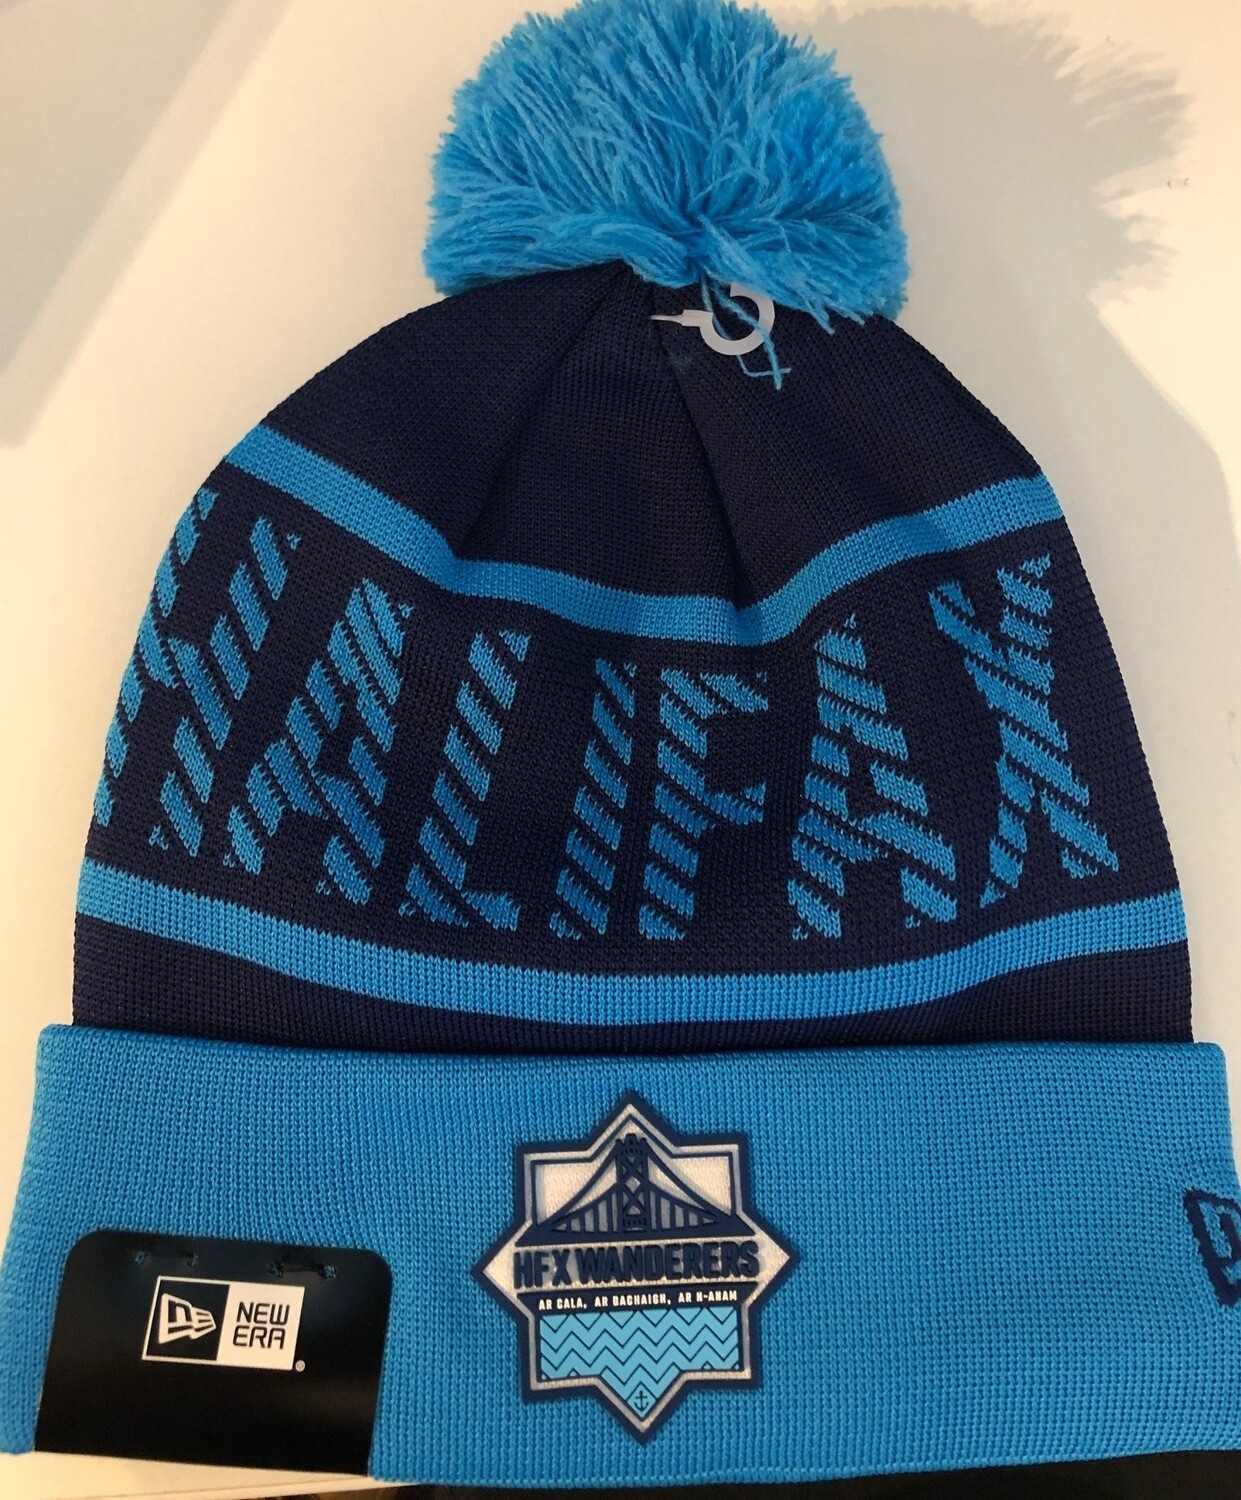 Tuque- Wanderers New Era Tuque